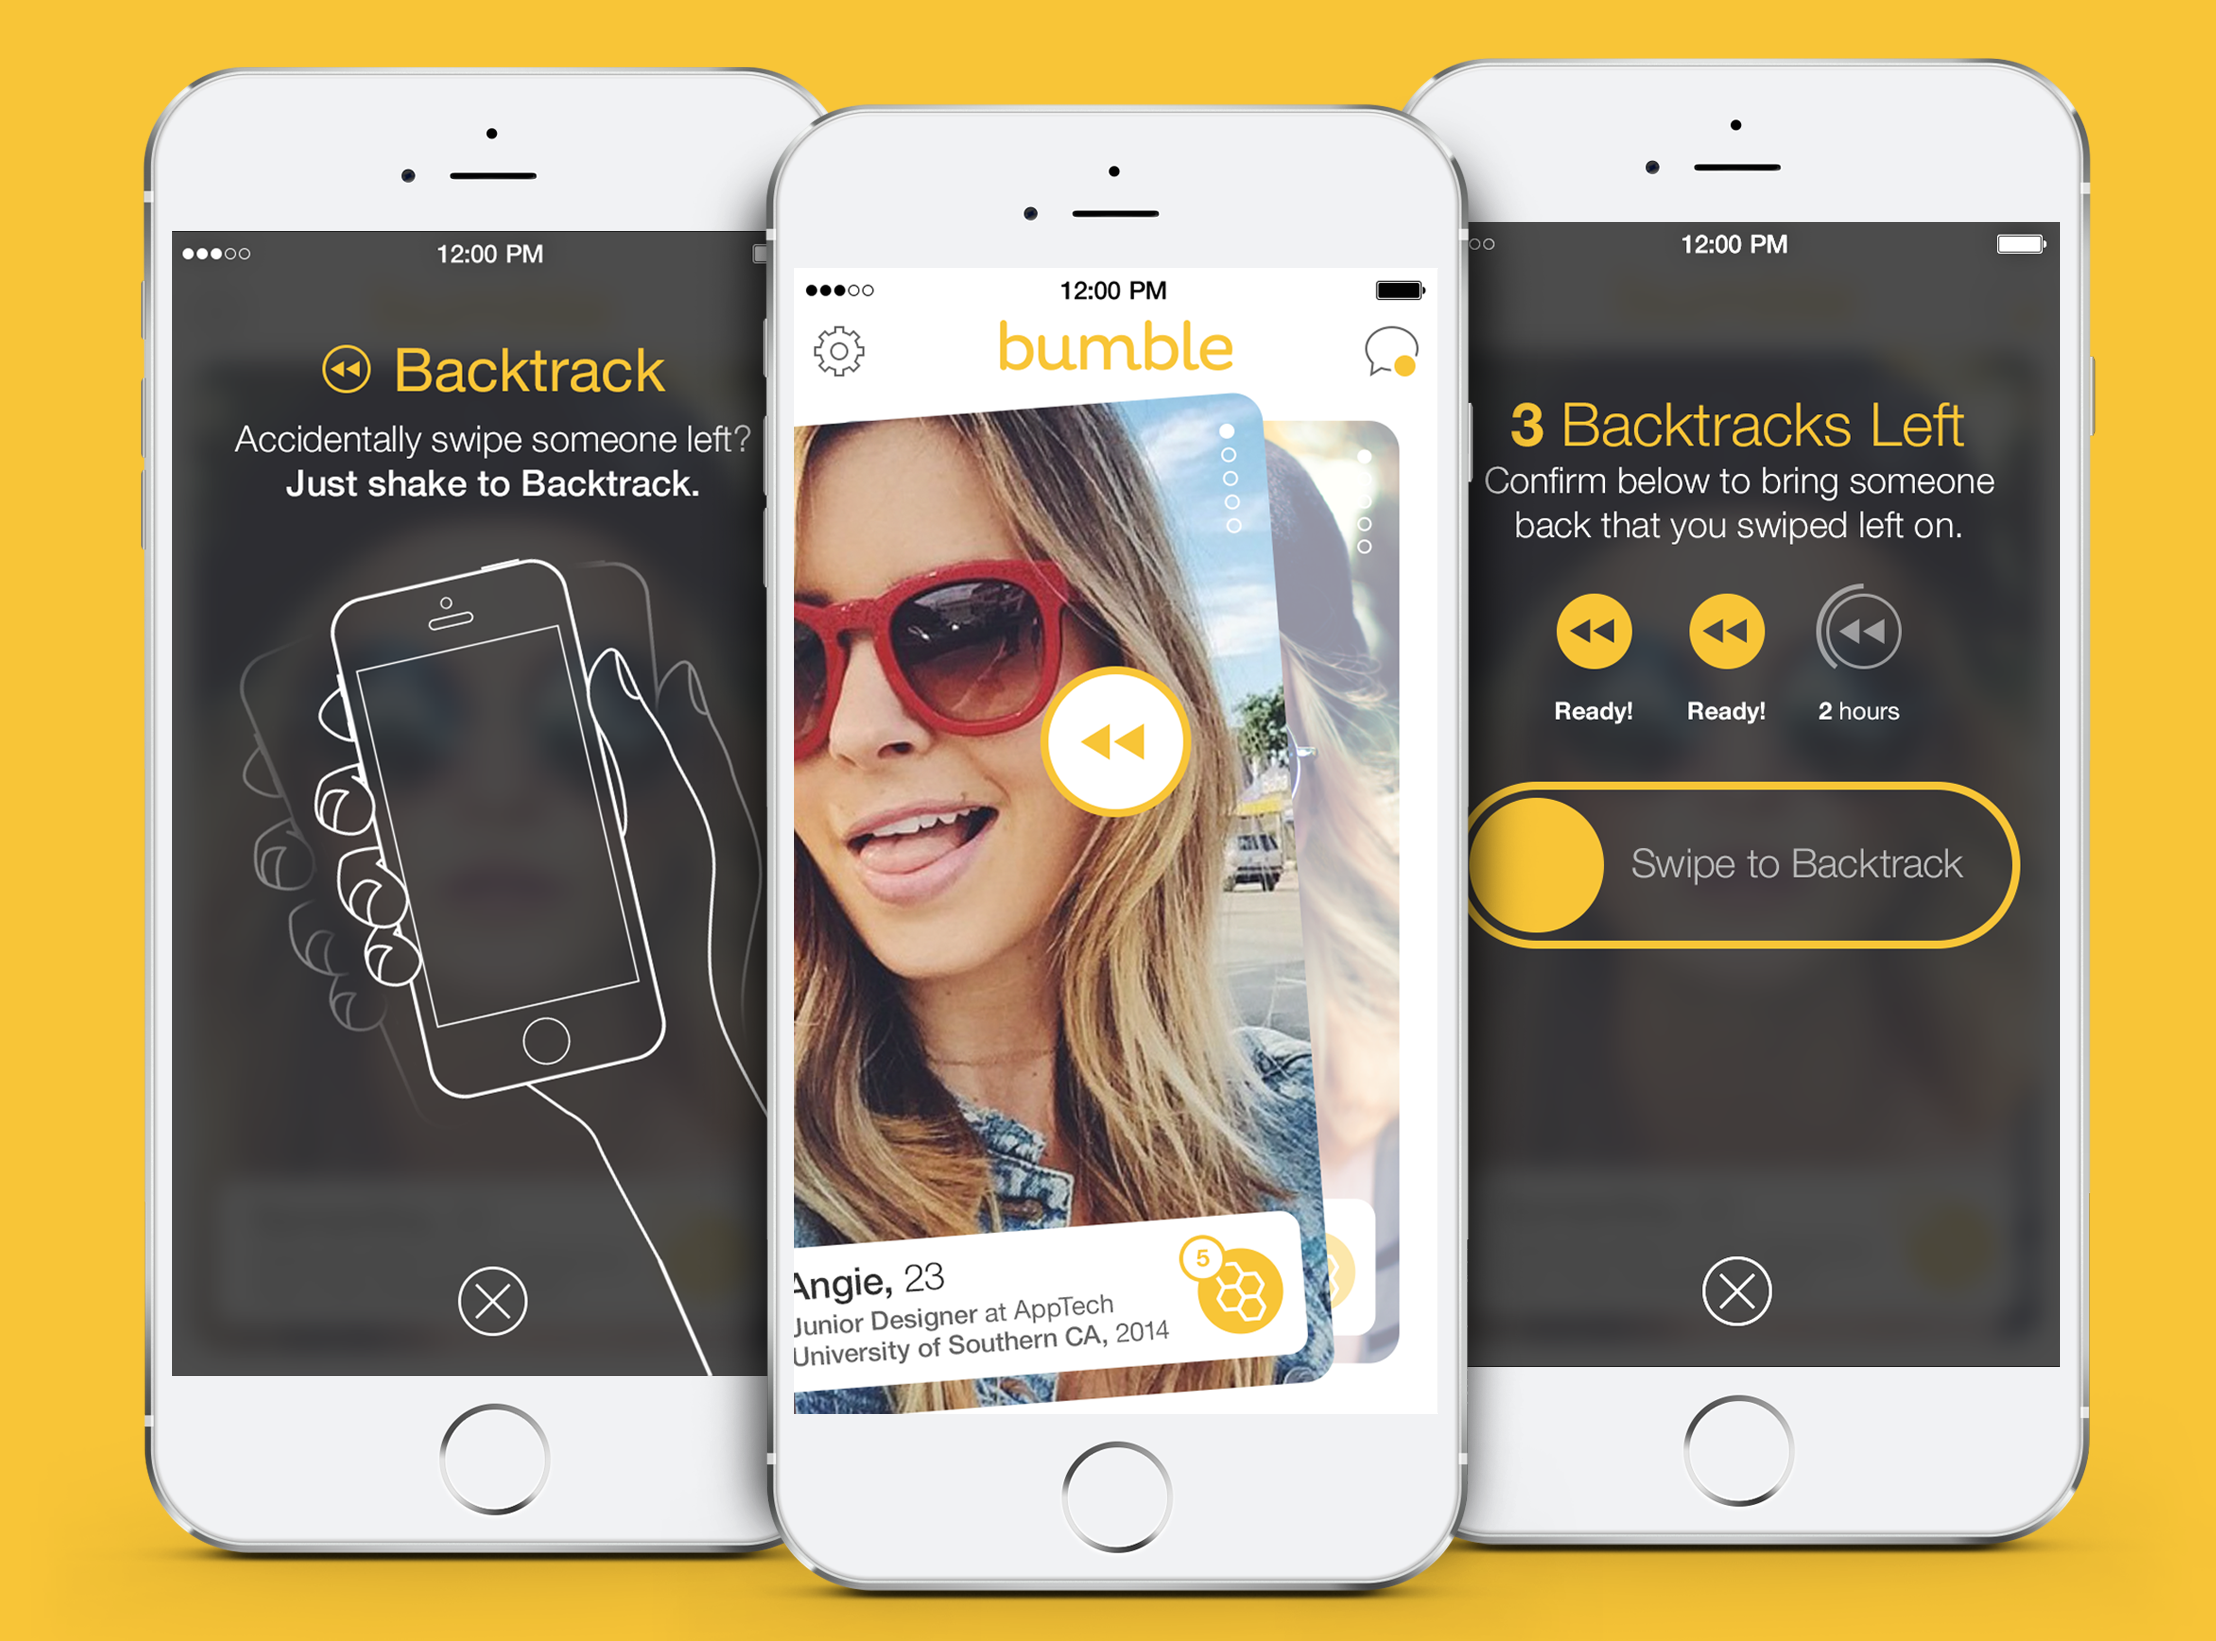 bumble dating app uk Bumble is the first app of its kind to bring dating, friend-finding, and career-building into a single social networking platform changing the rules of the game at bumble, women make the first move.